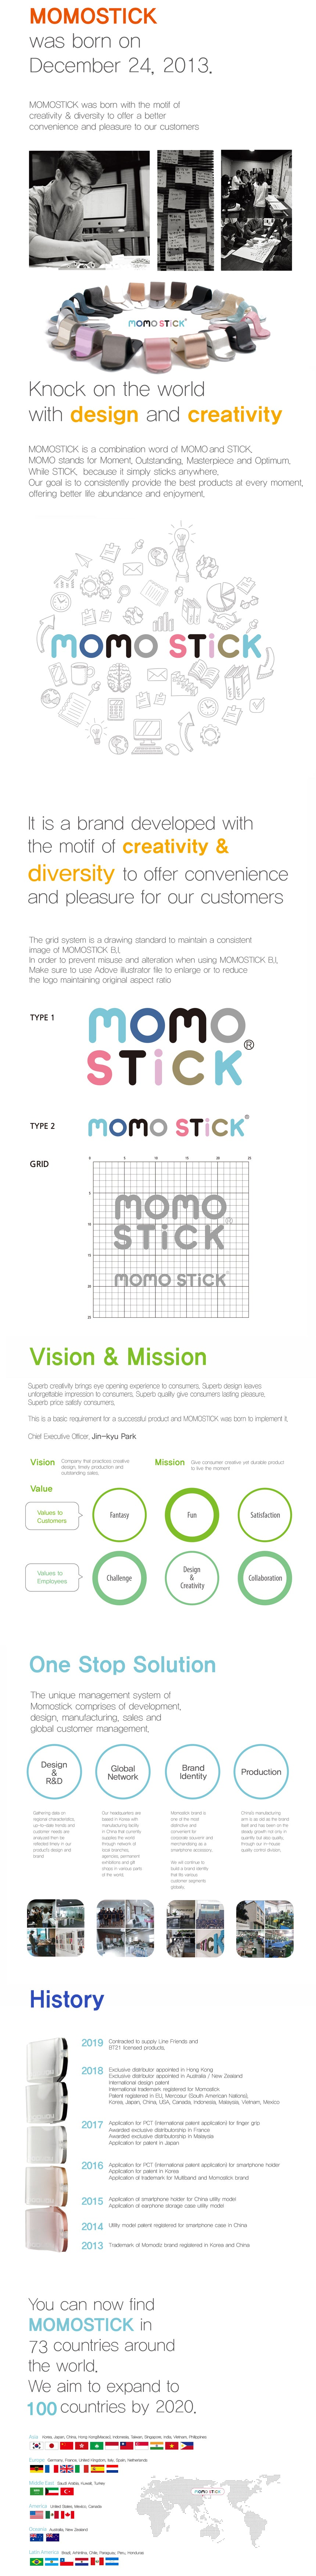 About us - Momostick